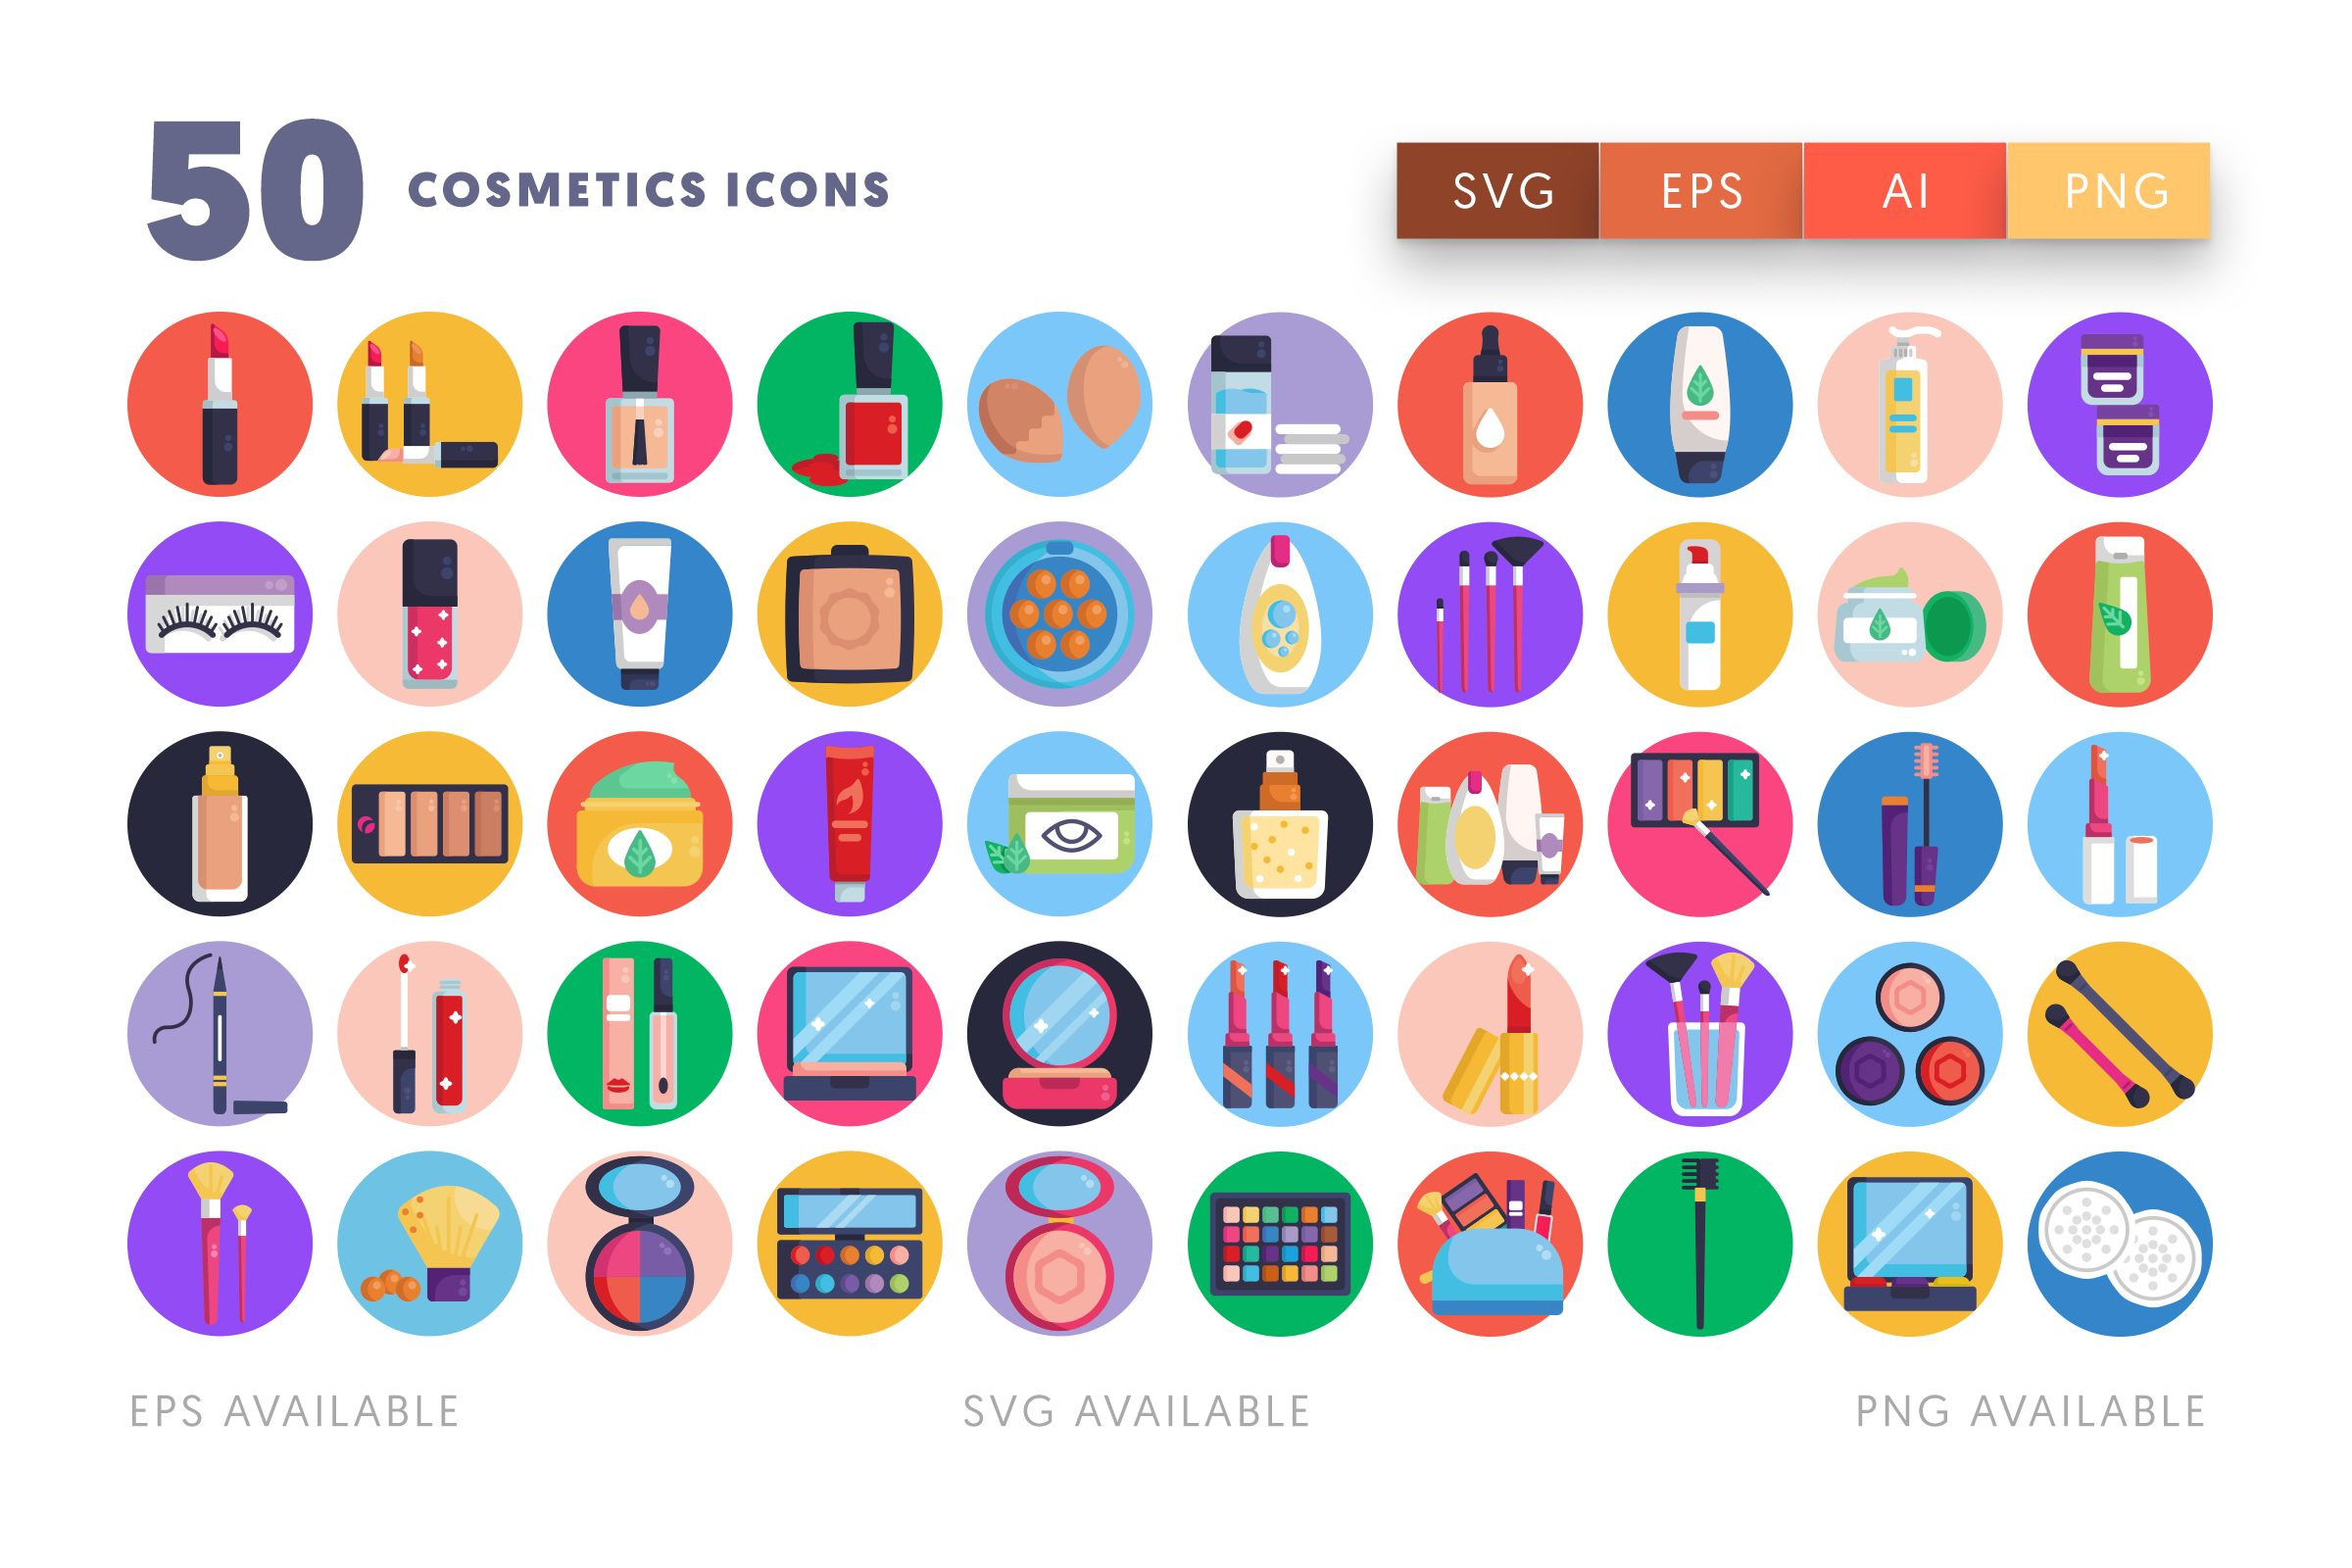 Cosmetics icons png/svg/eps